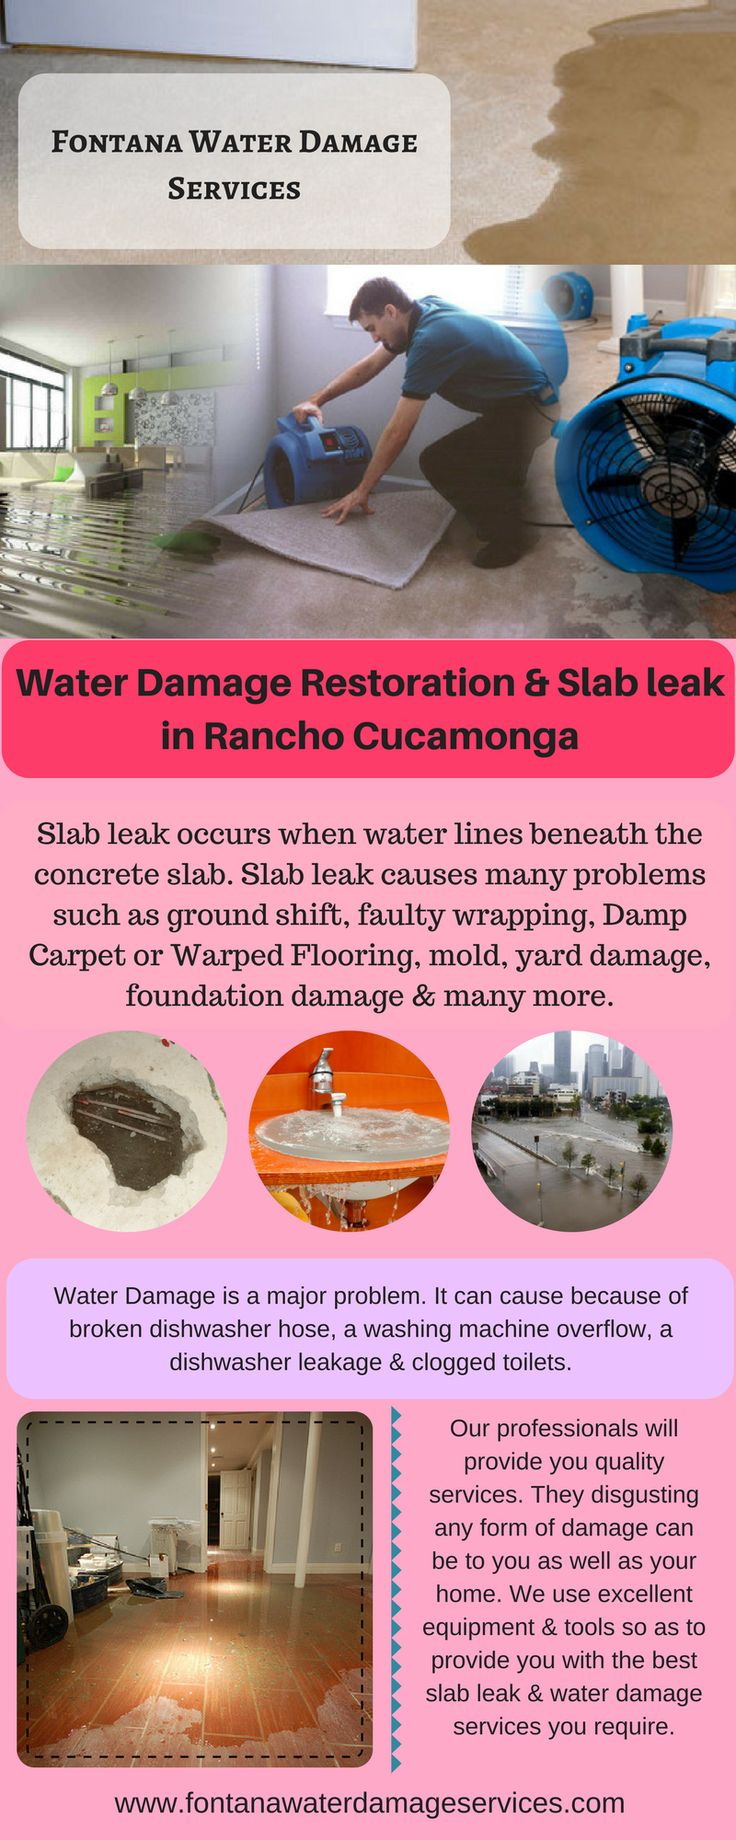 Are you looking for services which provide you slab leak & water damage restoration in Rancho Cucamonga? Then, the Fontana Water Damage Service provides you reliable services such as leak detection, sewer backed up, mold remediation, content restoration & many more with their experienced experts. For more details you can visit at - http://fontanawaterdamageservices.com